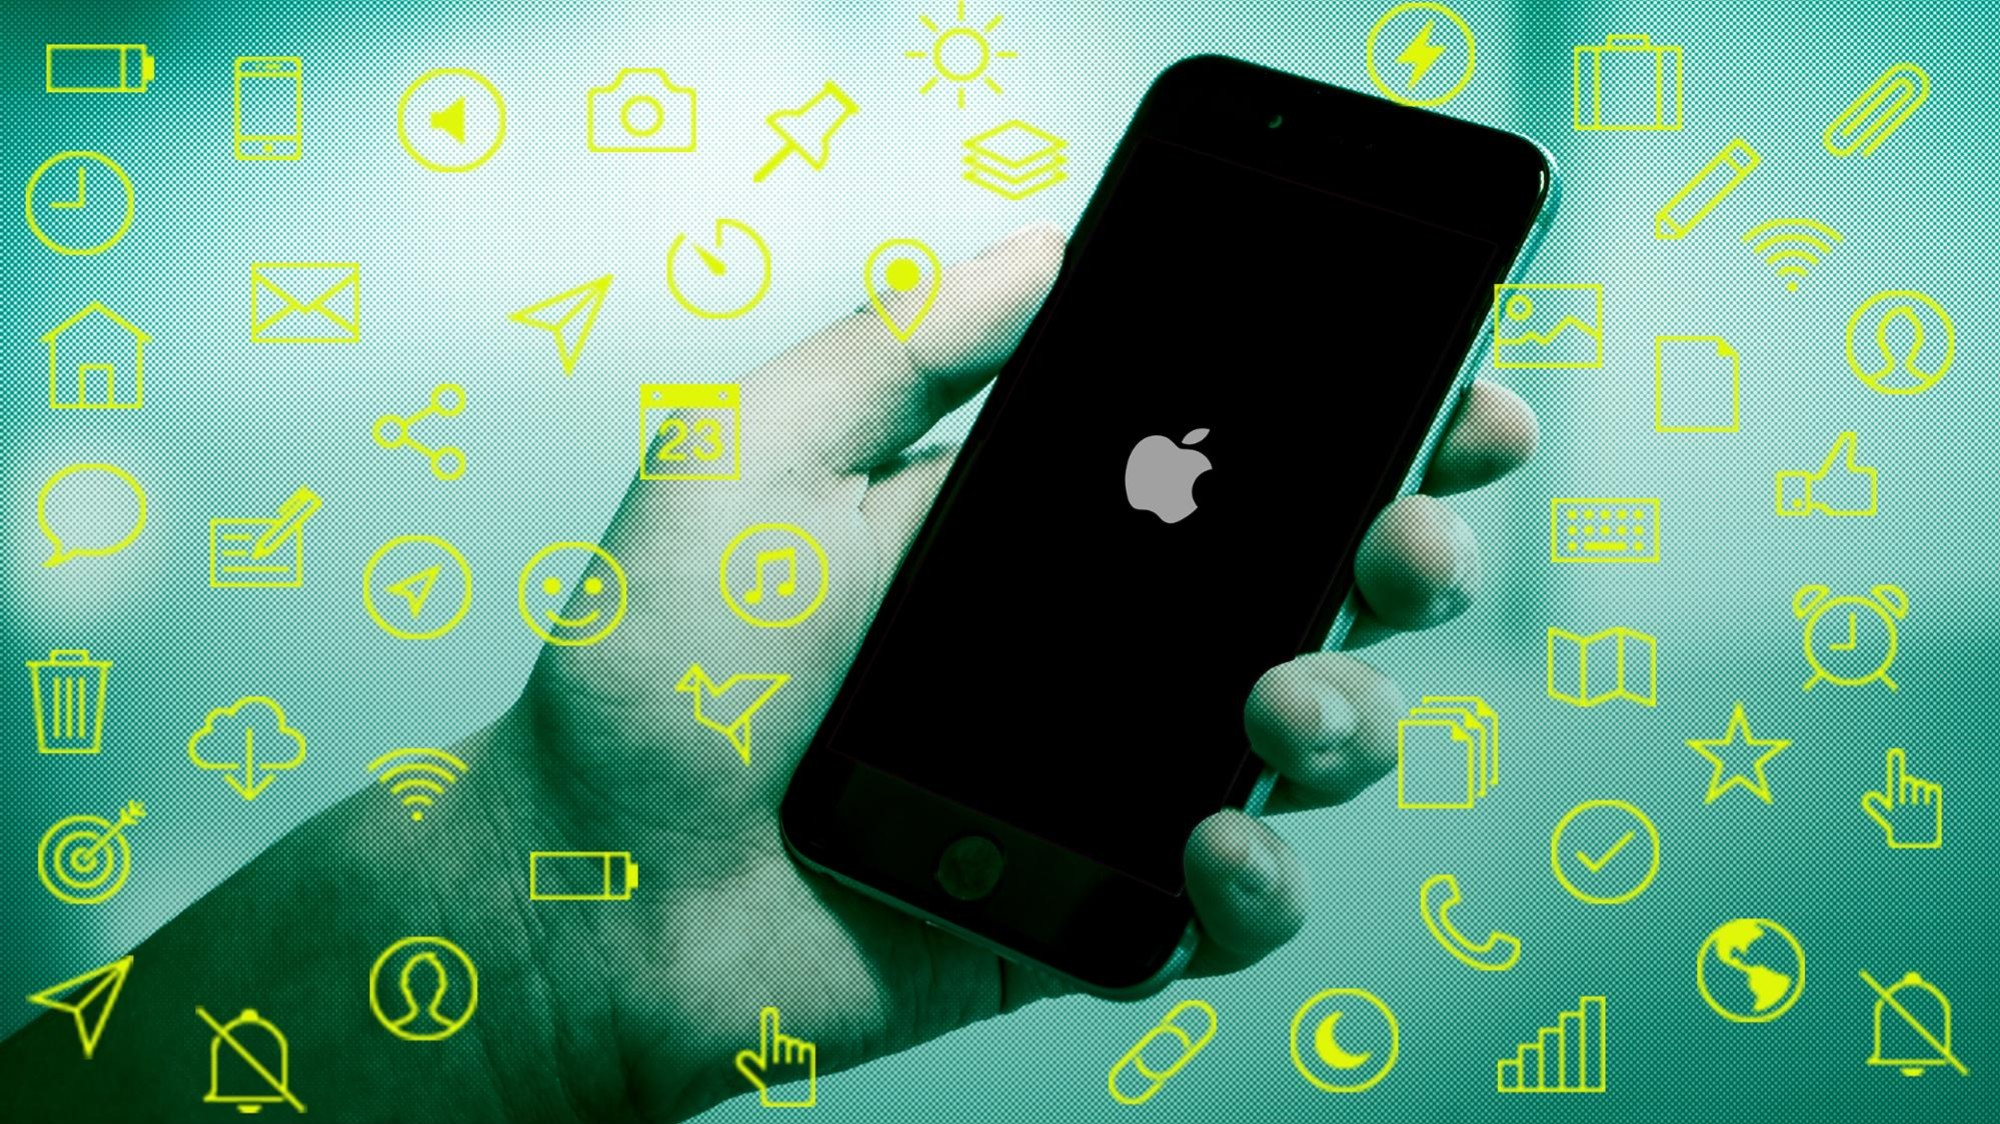 12 Tips to Get the Most Out of Your iPhone on iOS 11 - VICE